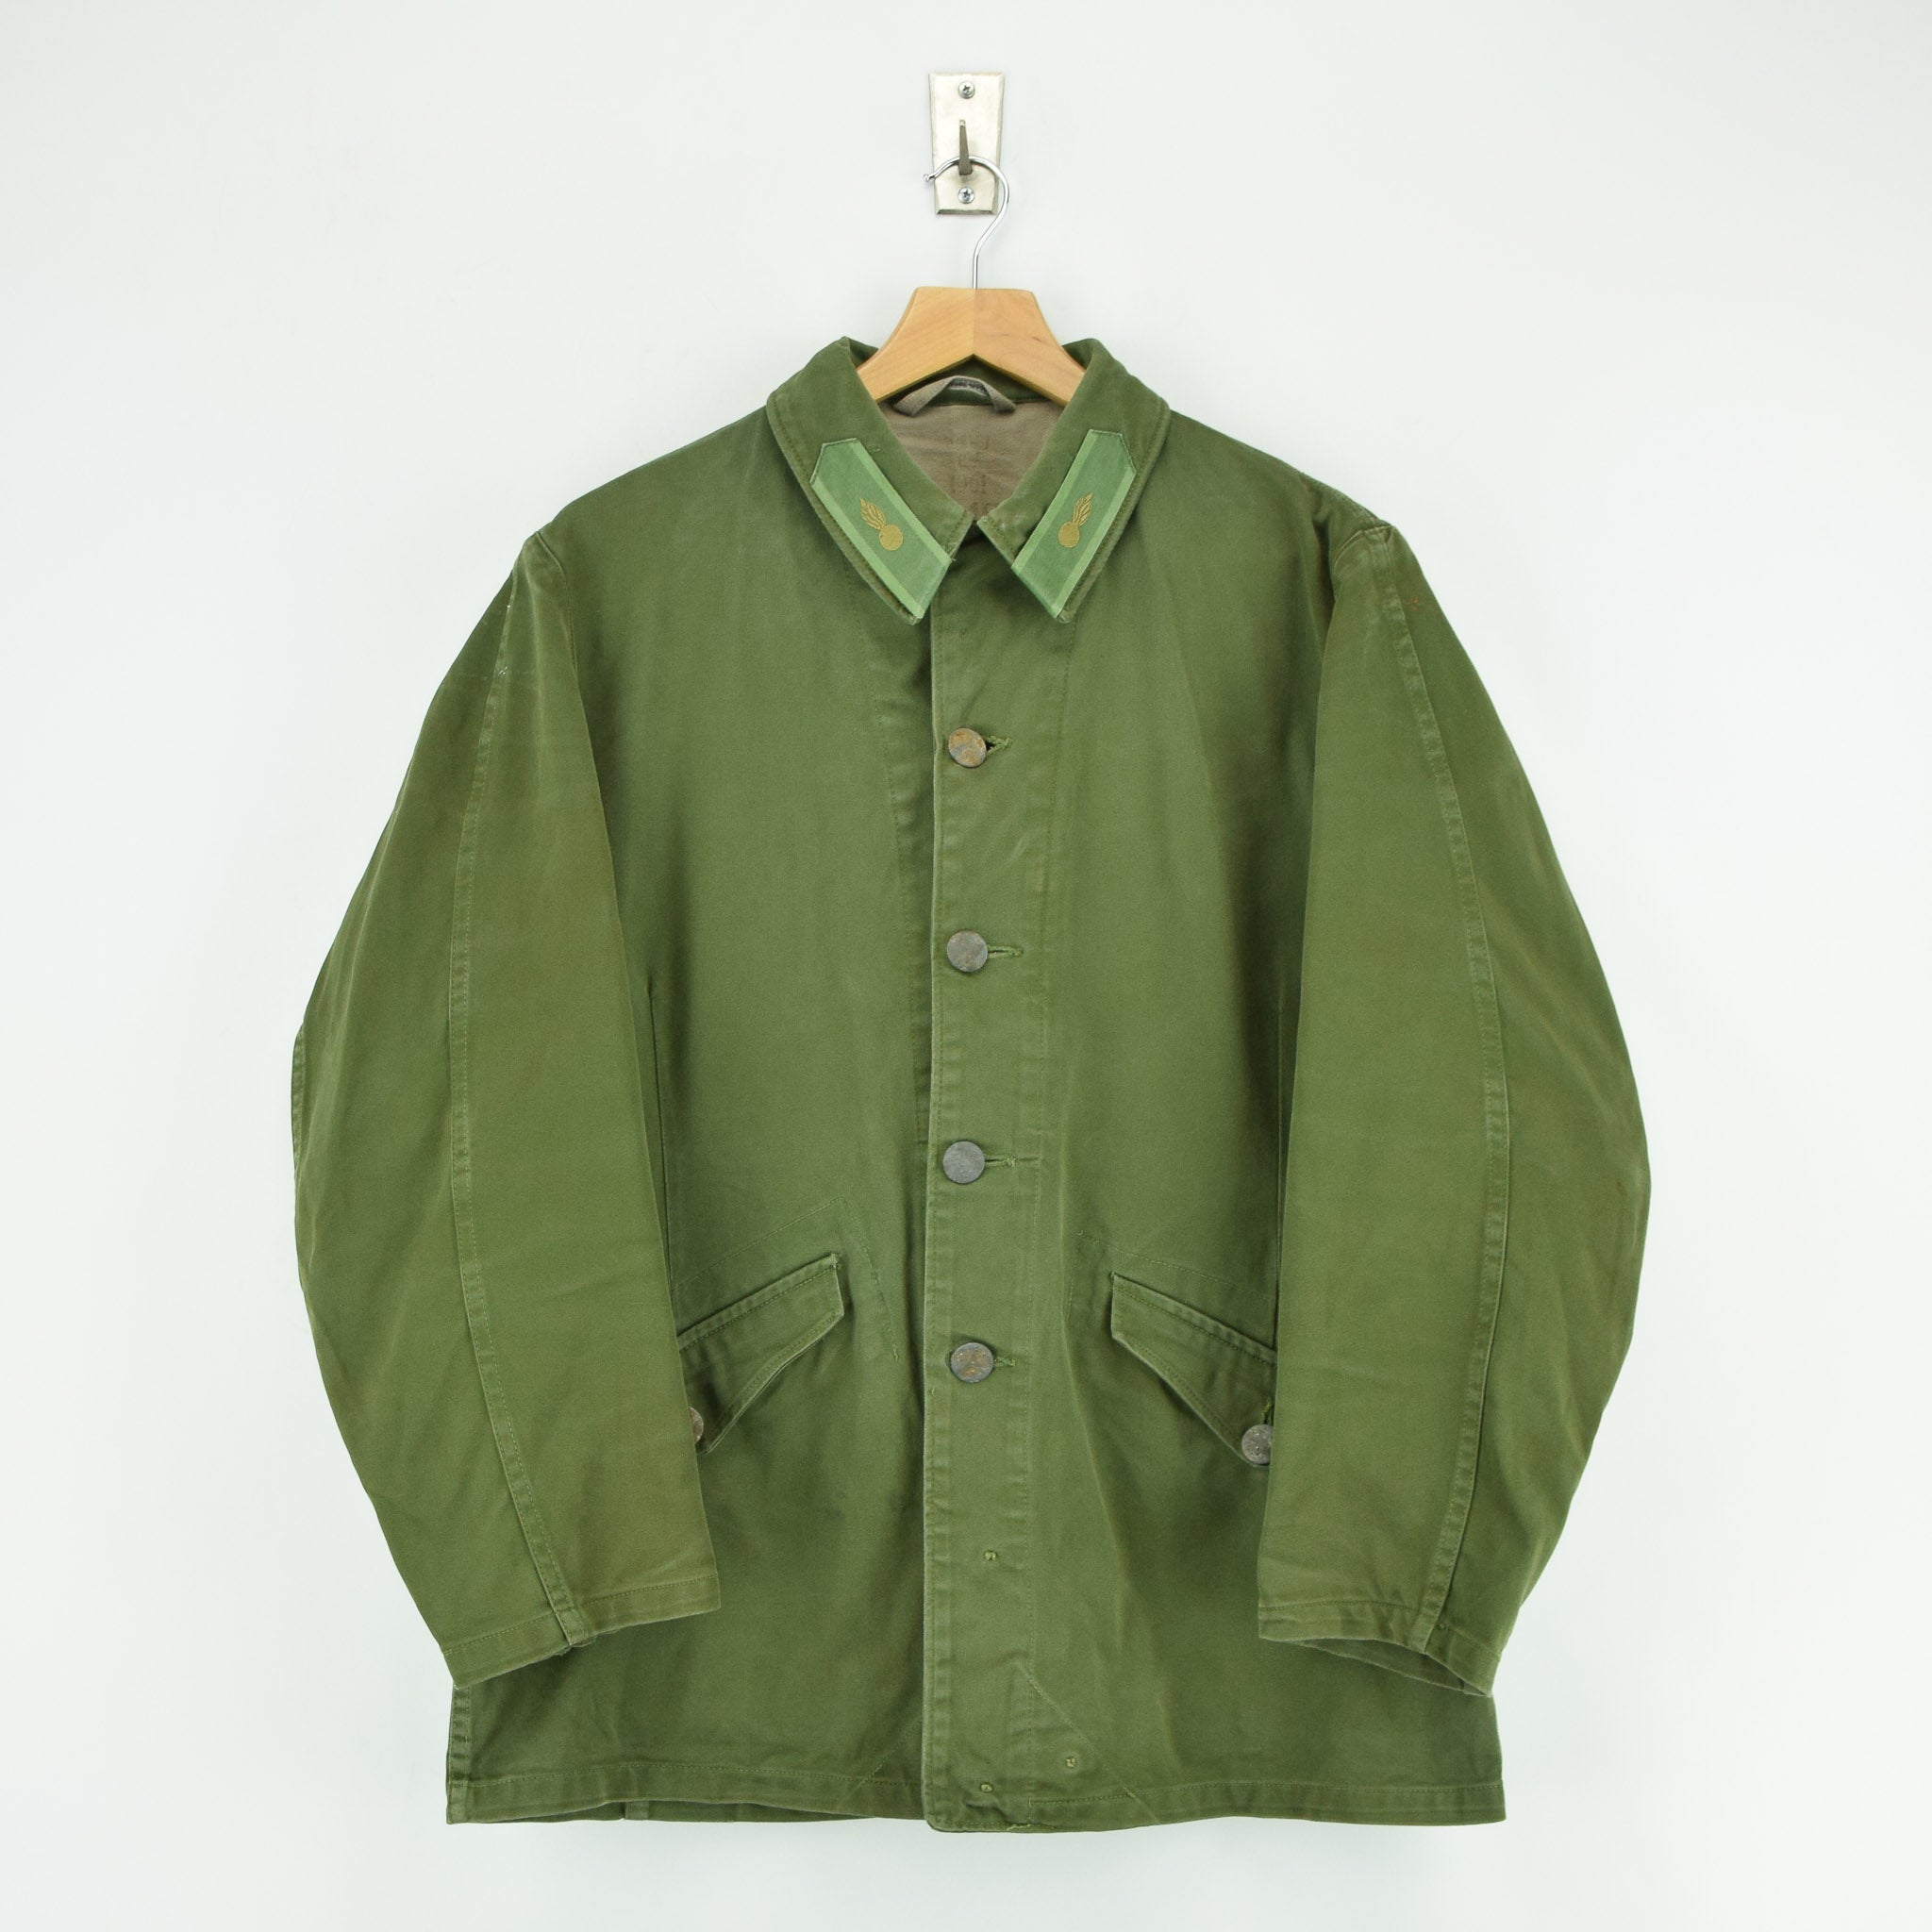 Vintage Well Worn Swedish M59 Field Military Green Worker Style Jacket M / L front